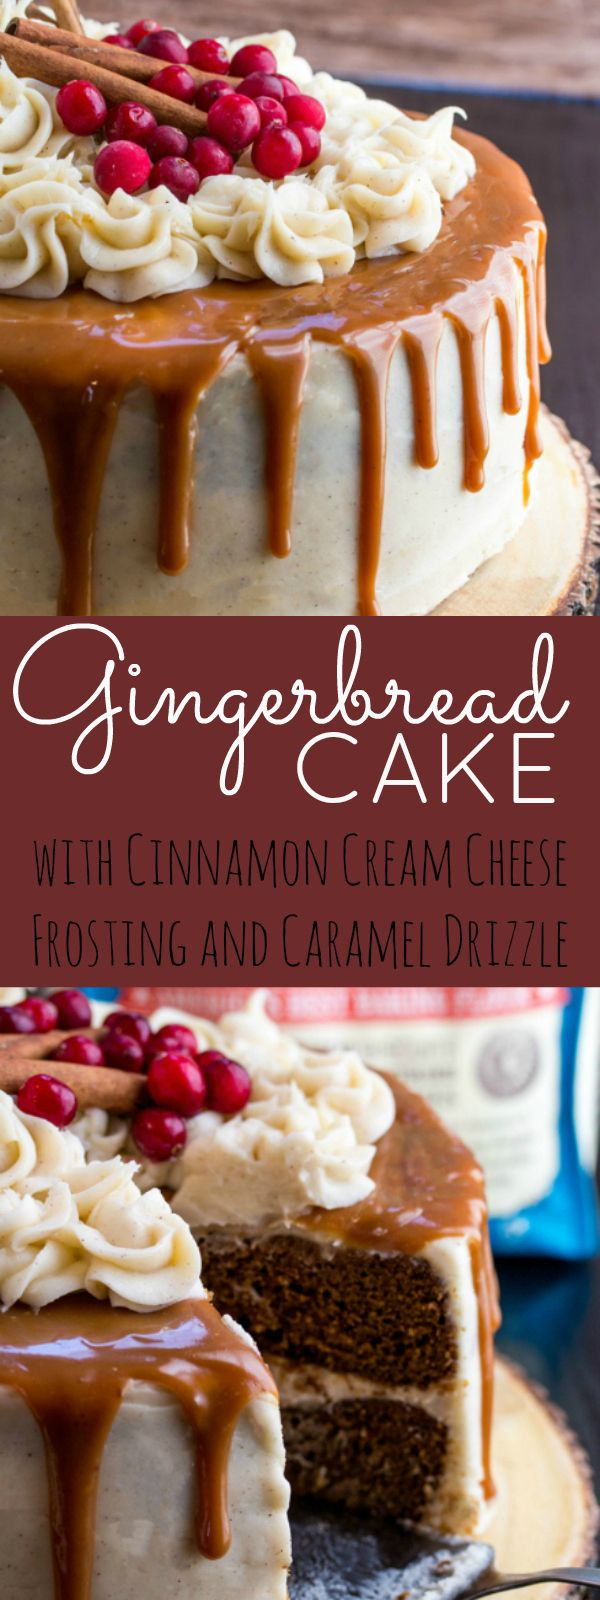 Gingerbread Cake With Cinnamon Cream Cheese Buttercream And Caramel Drizzle Is A Great Festive Holiday Dessert